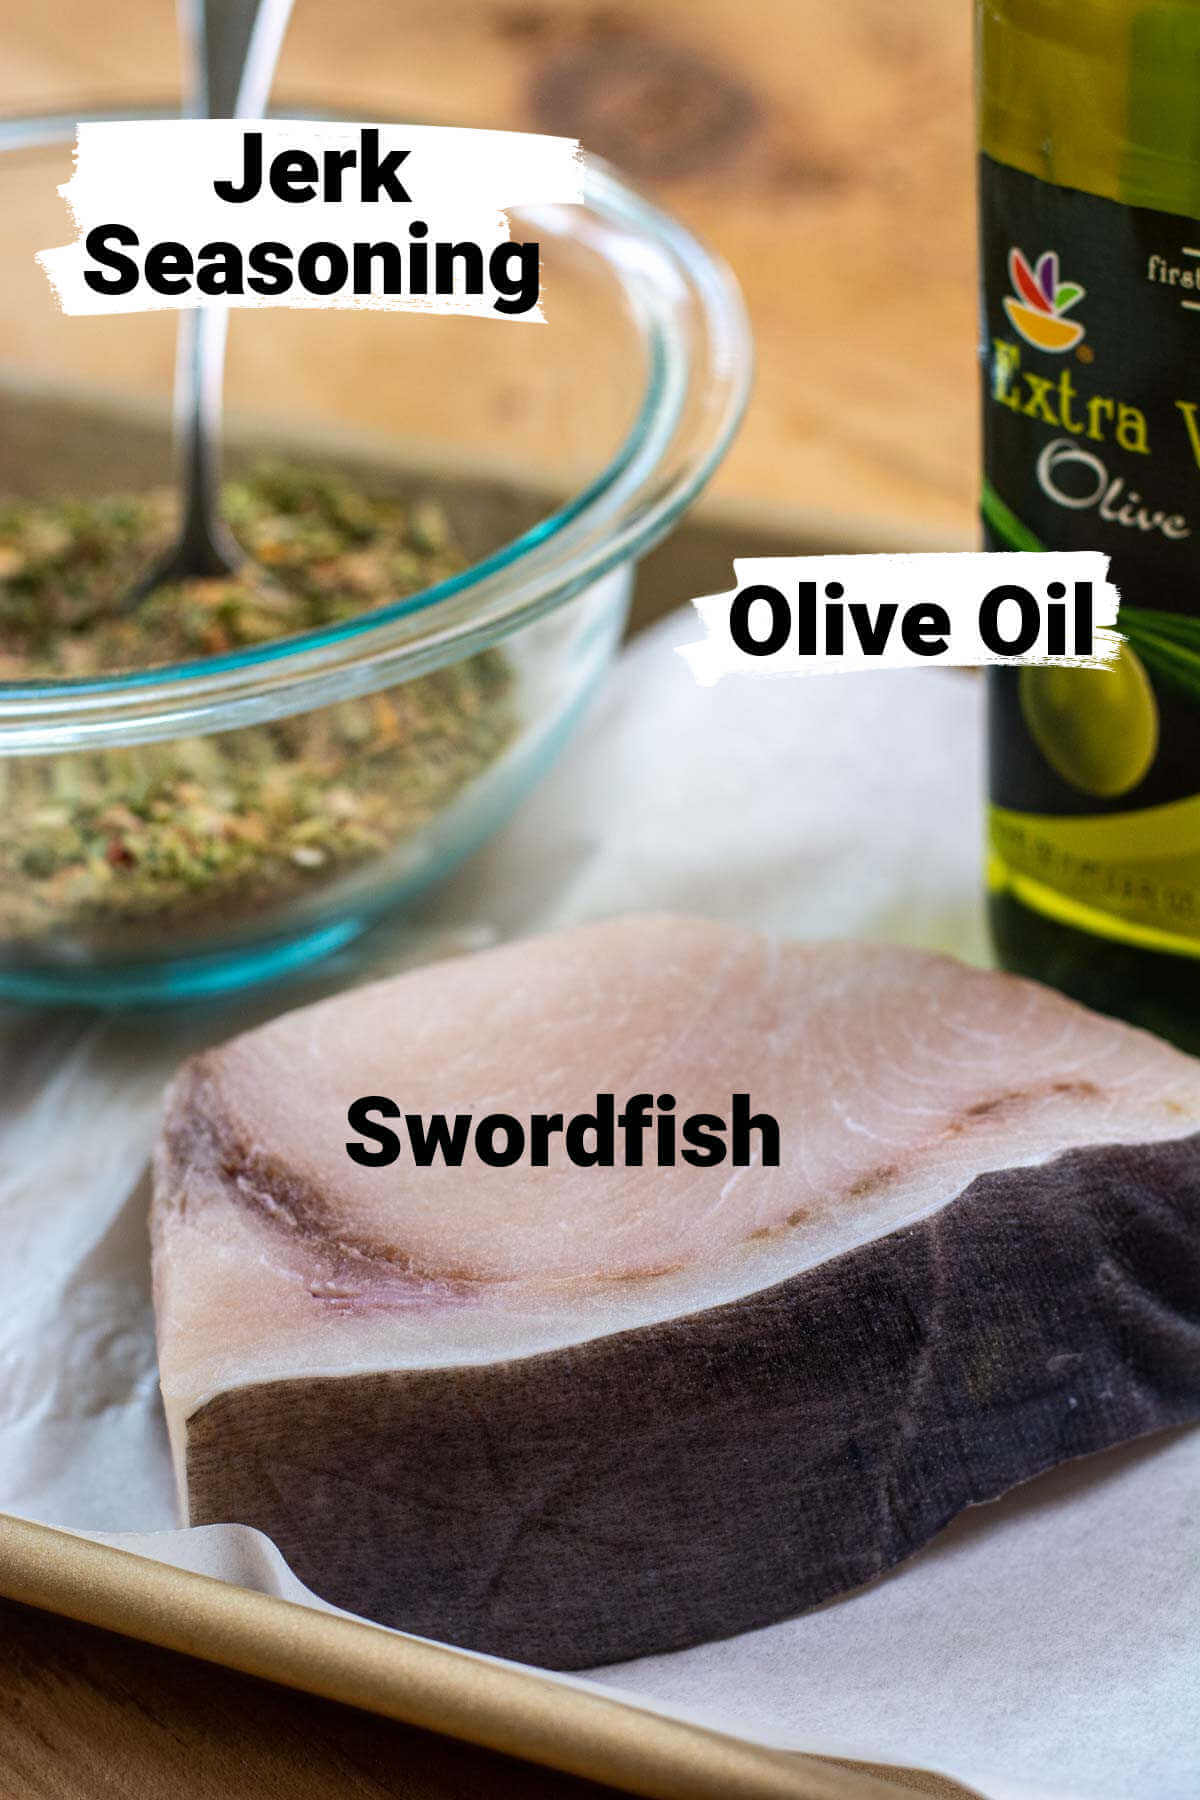 sheet pan with swordfish, olive oil and seasoning on a lined sheet pan.